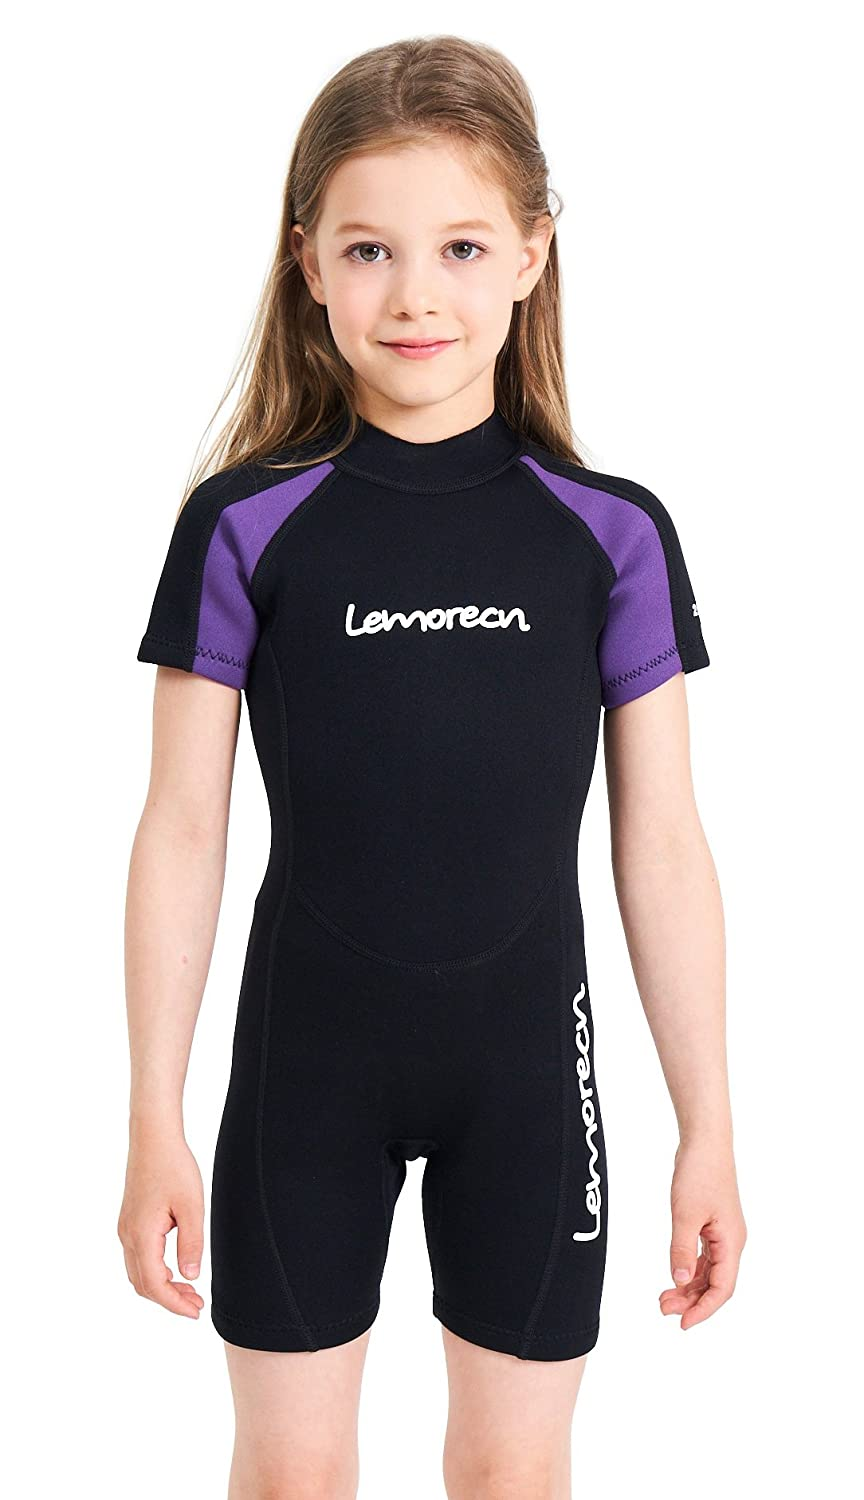 Lemorecn Kids Wetsuits Youth Premium Neoprene 2mm Youth's Shorty Swim Suits